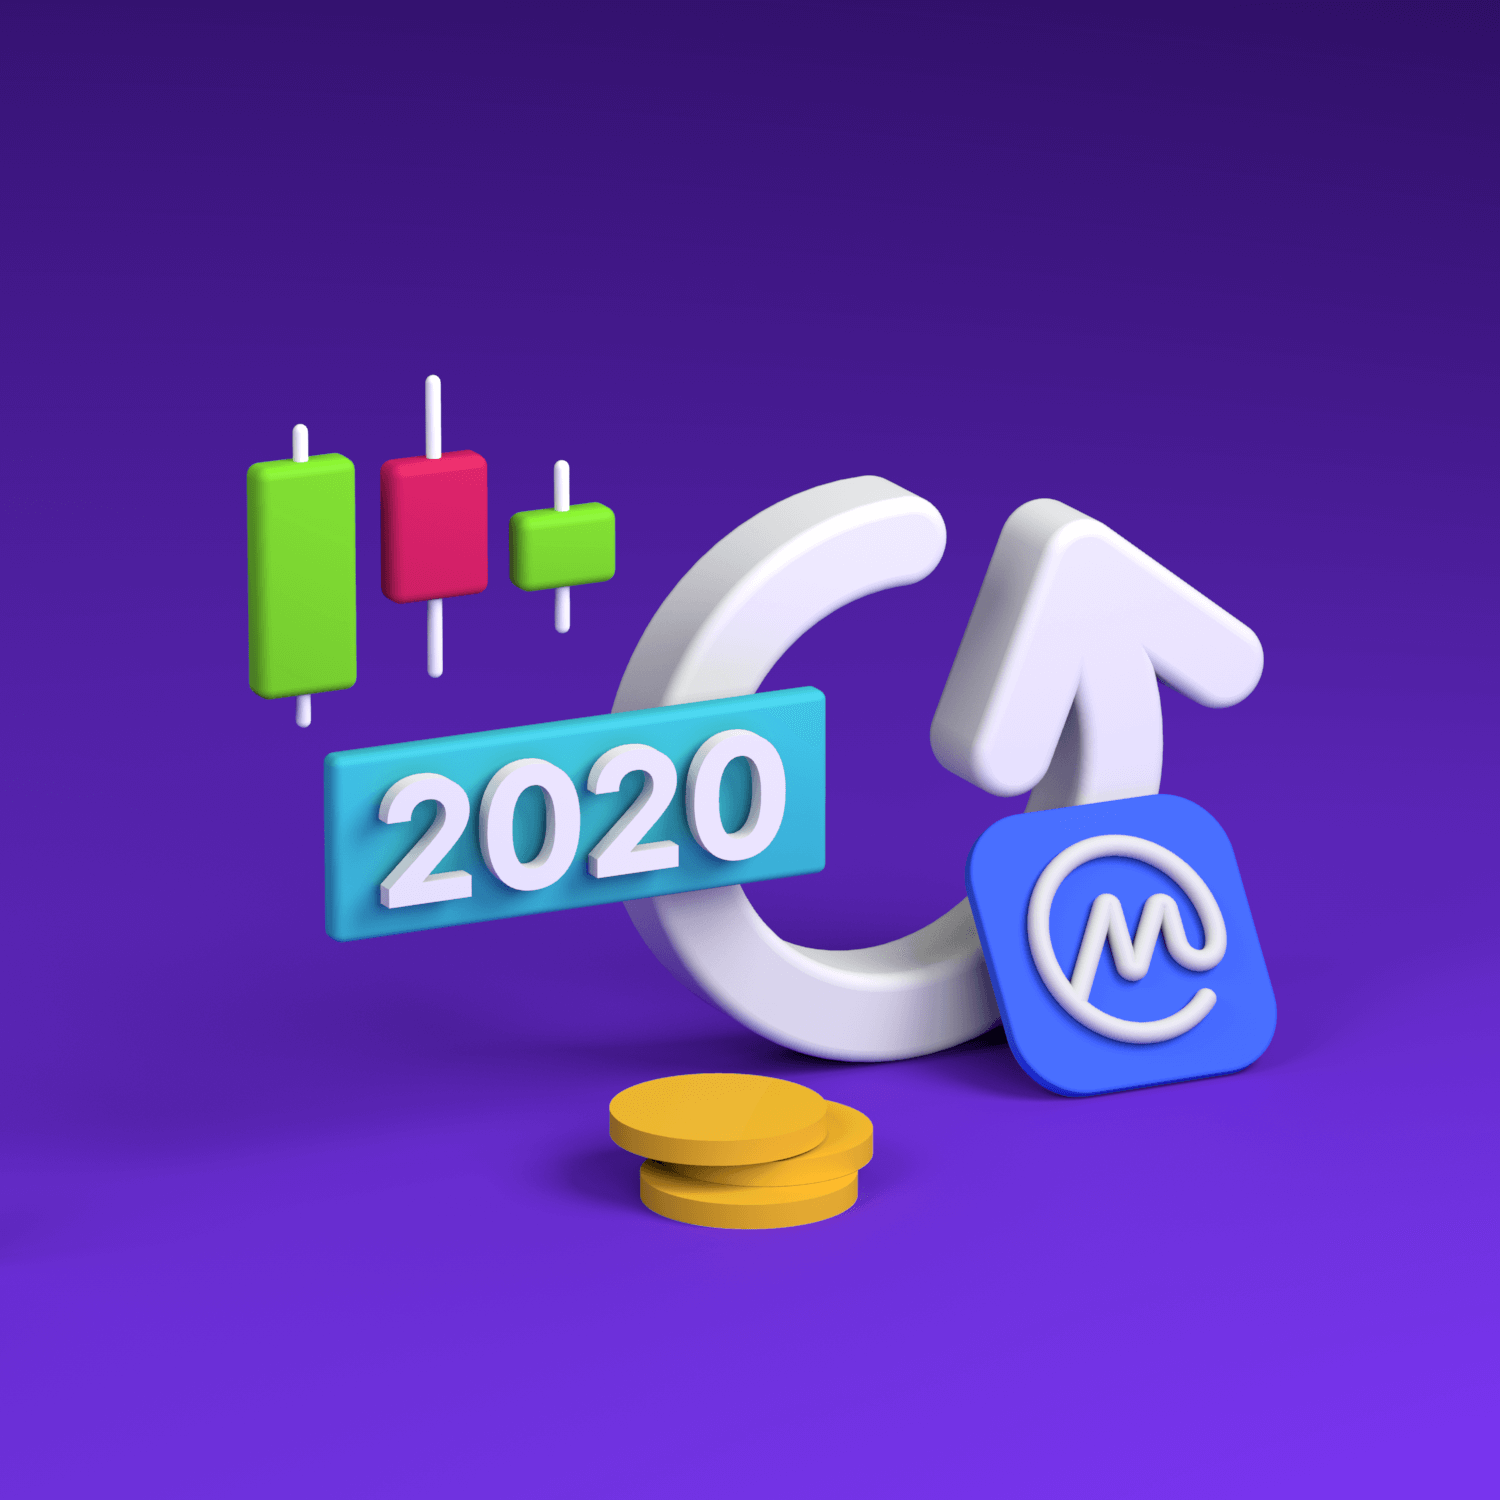 CoinMarketCap 2020 Most Influential Poll Results! Did You Guess 2020's Most Influential Person?